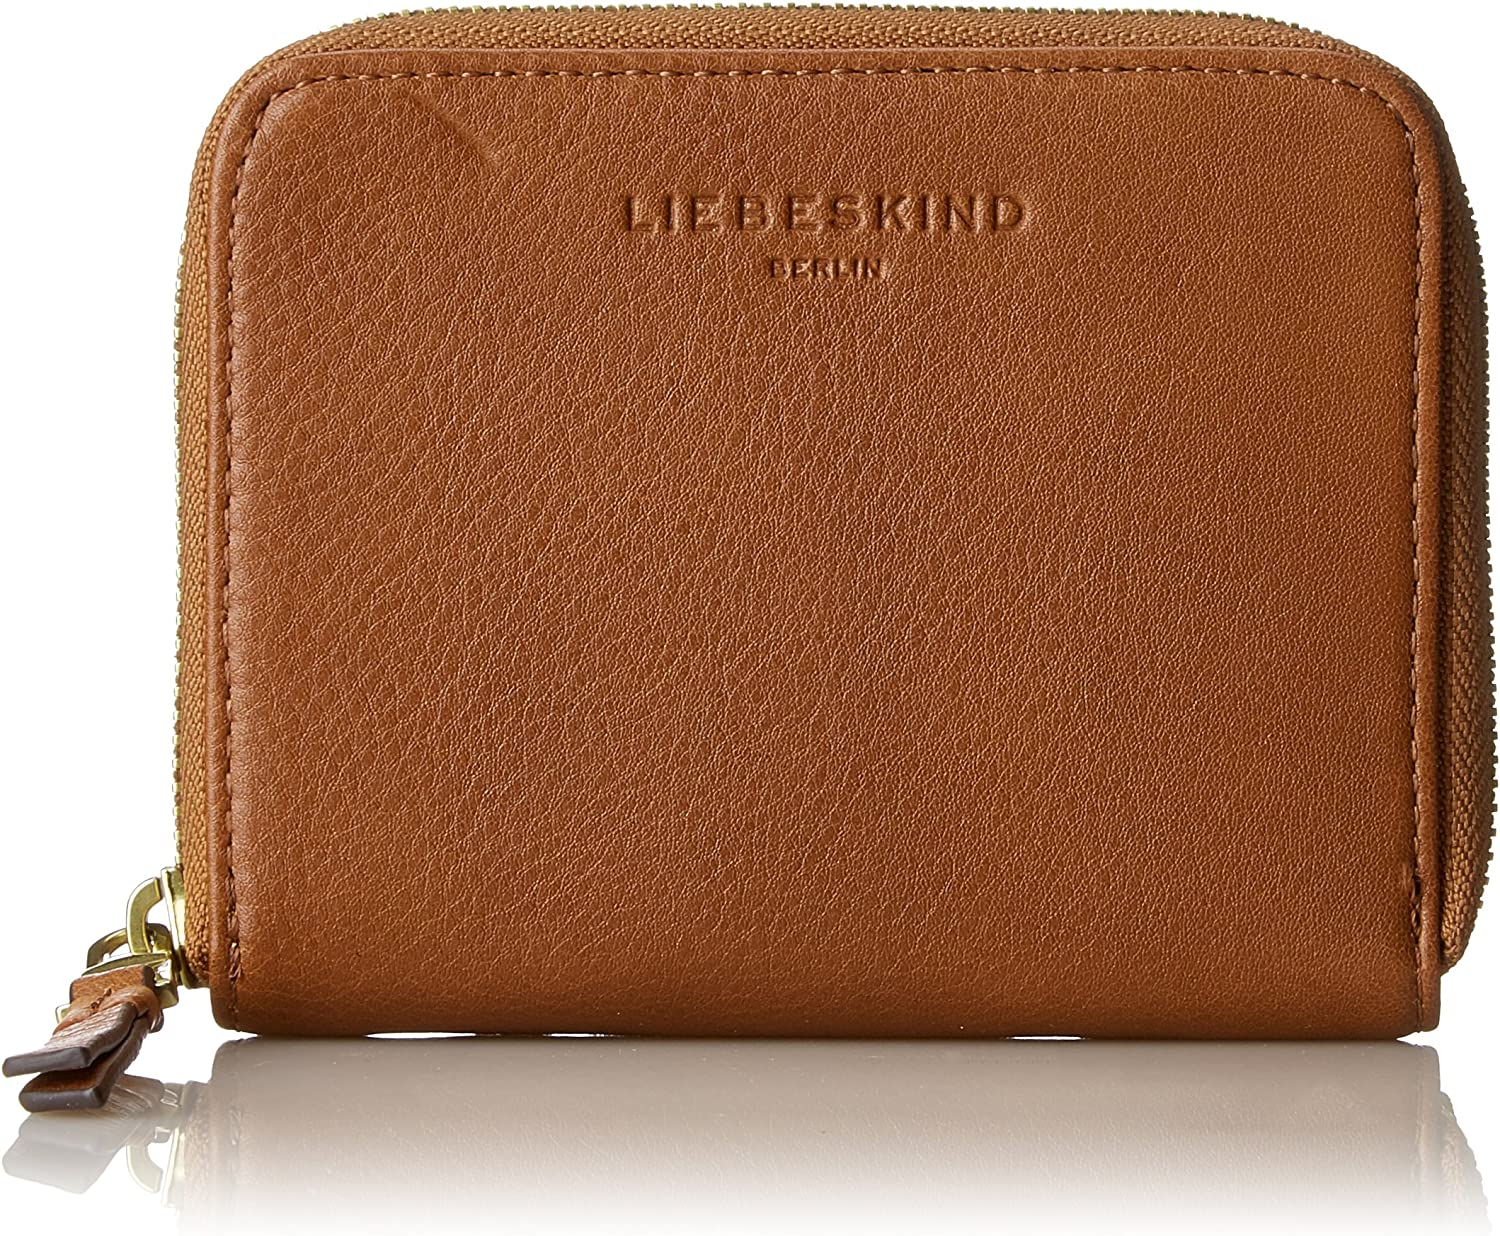 Liebeskind Berlin Women's Connyf8 Cocami Leather Zip Around Wallet